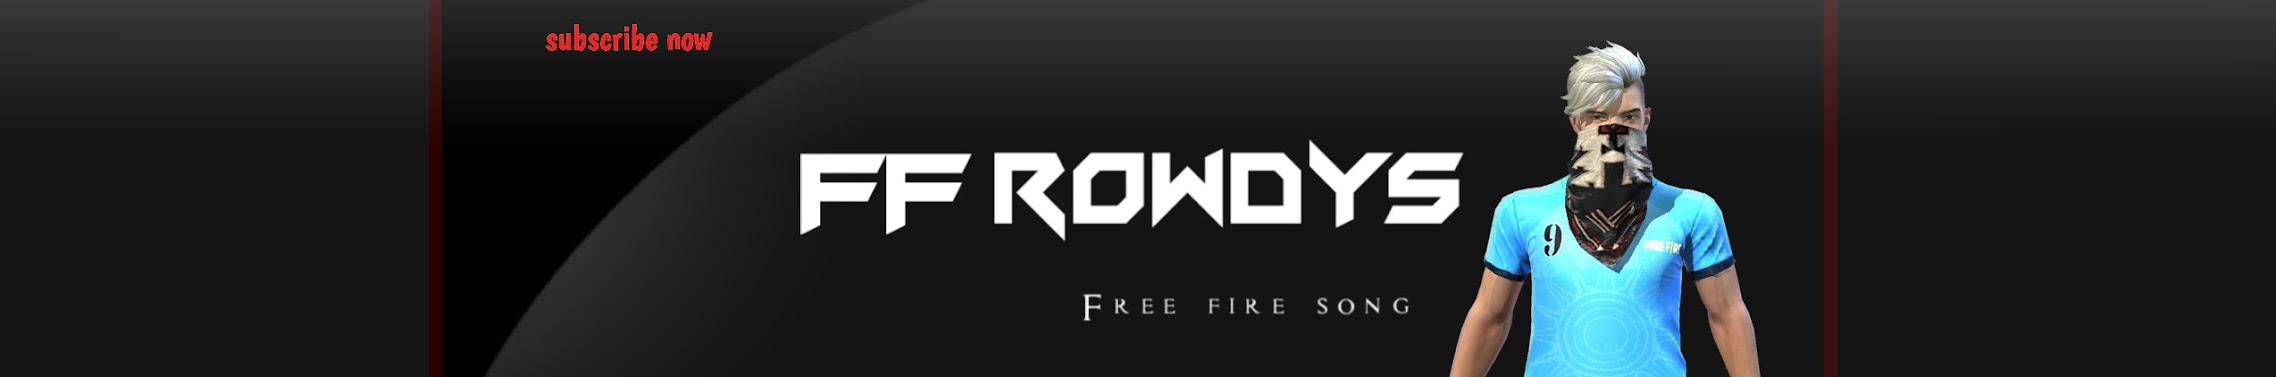 Free Fire Rowdys Youtube Channel Analytics And Report Powered By Noxinfluencer Mobile